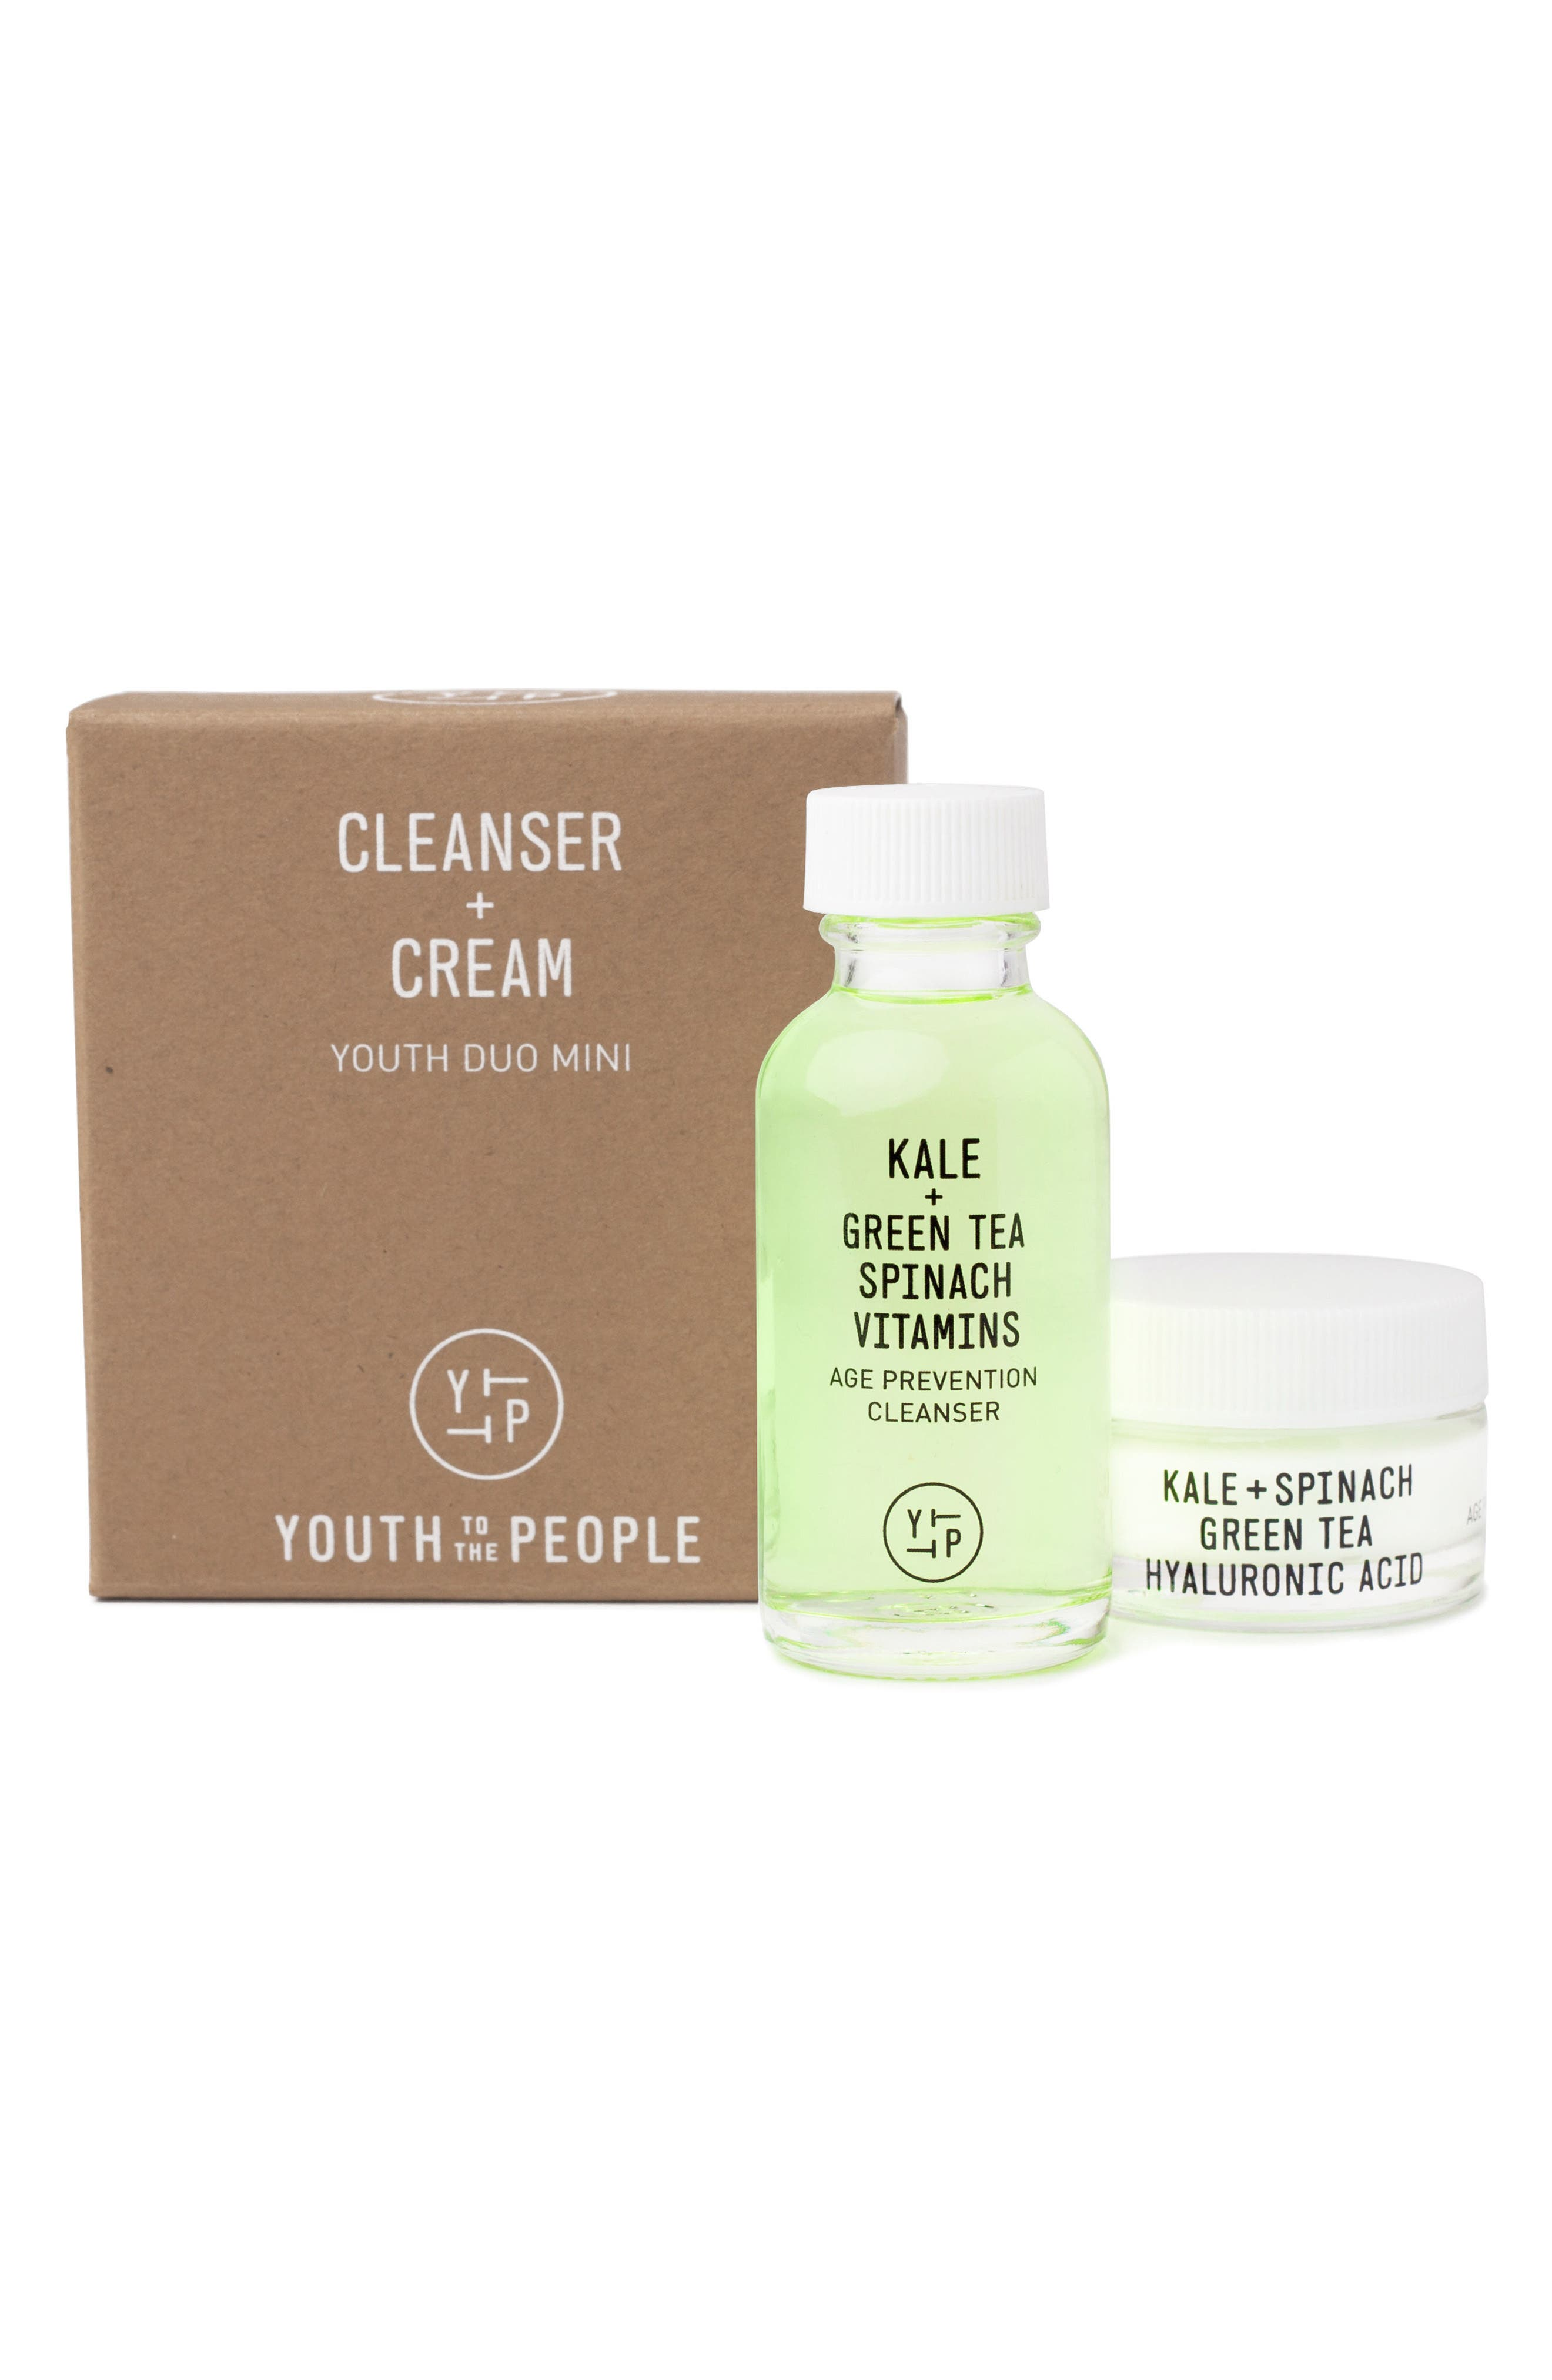 Youth to the People Age Prevention Superfood Mini Duo